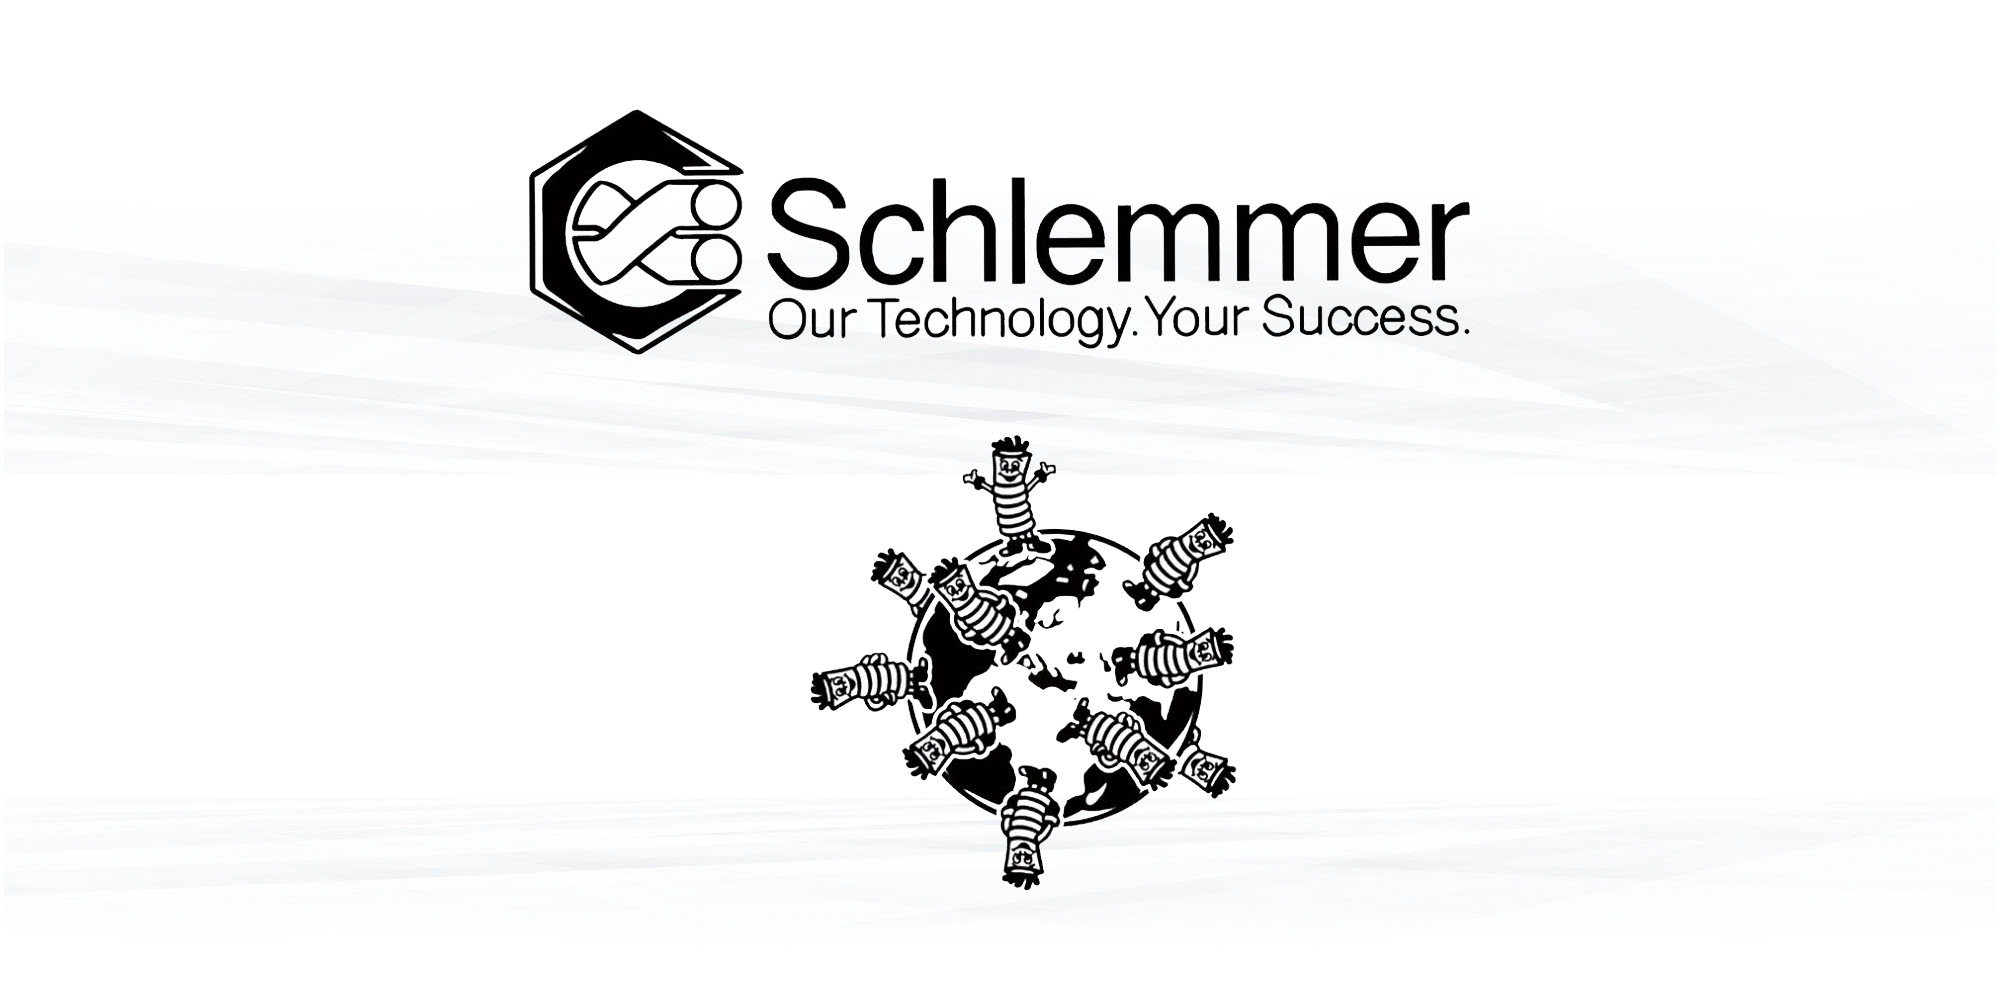 Schlemmerisation of the World Schlemmer Video that shows the importance of Schlemmer Products worldwide